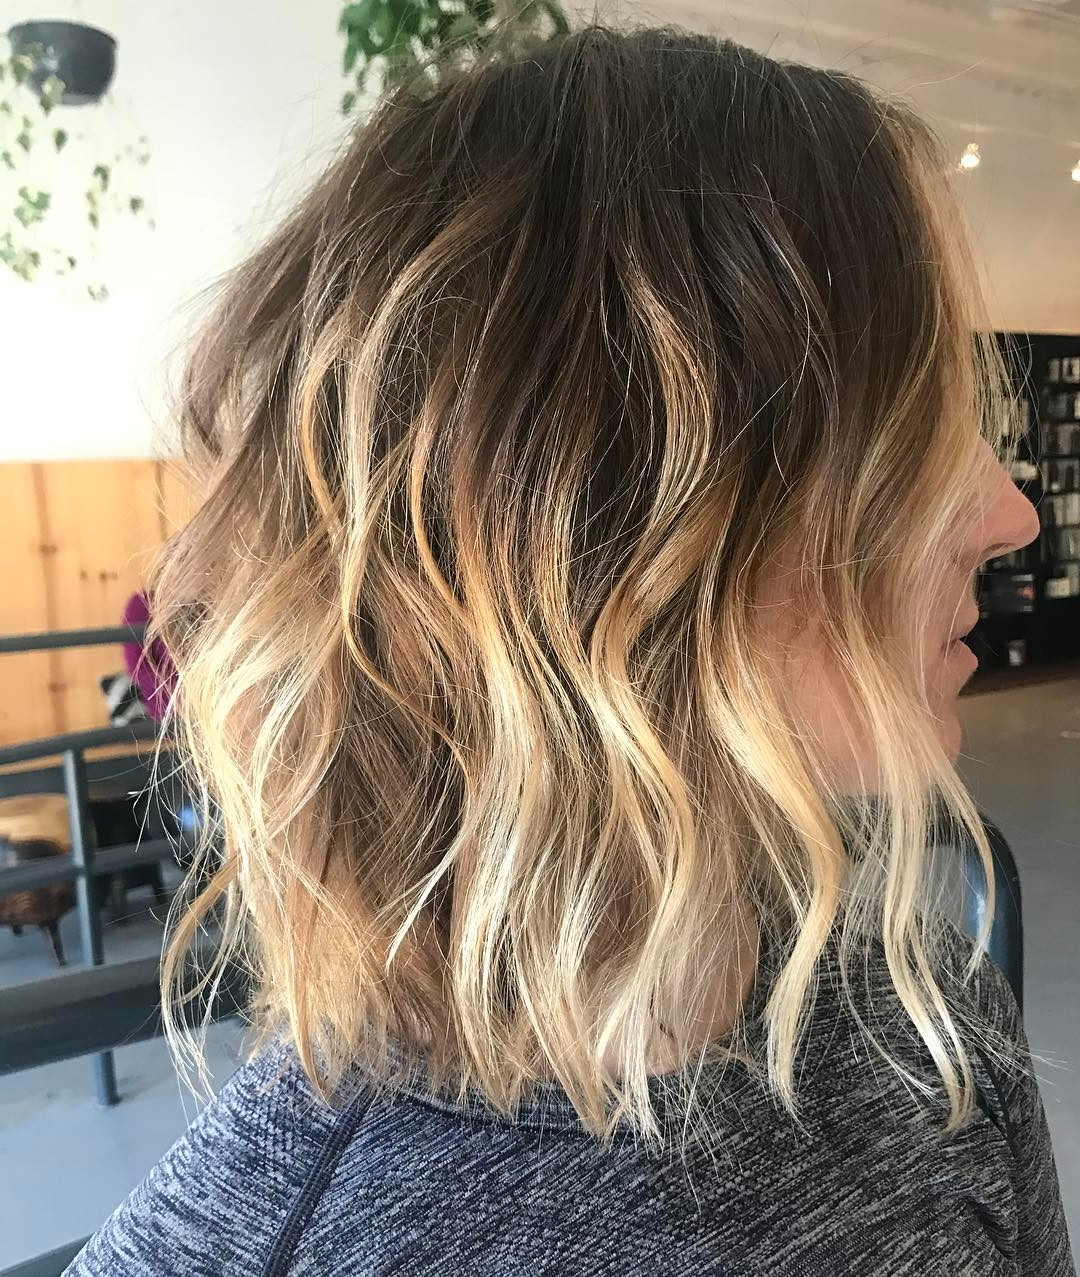 Fashionable Ombre Medium Hairstyles In 30 Chic Everyday Hairstyles For Shoulder Length Hair (View 14 of 20)